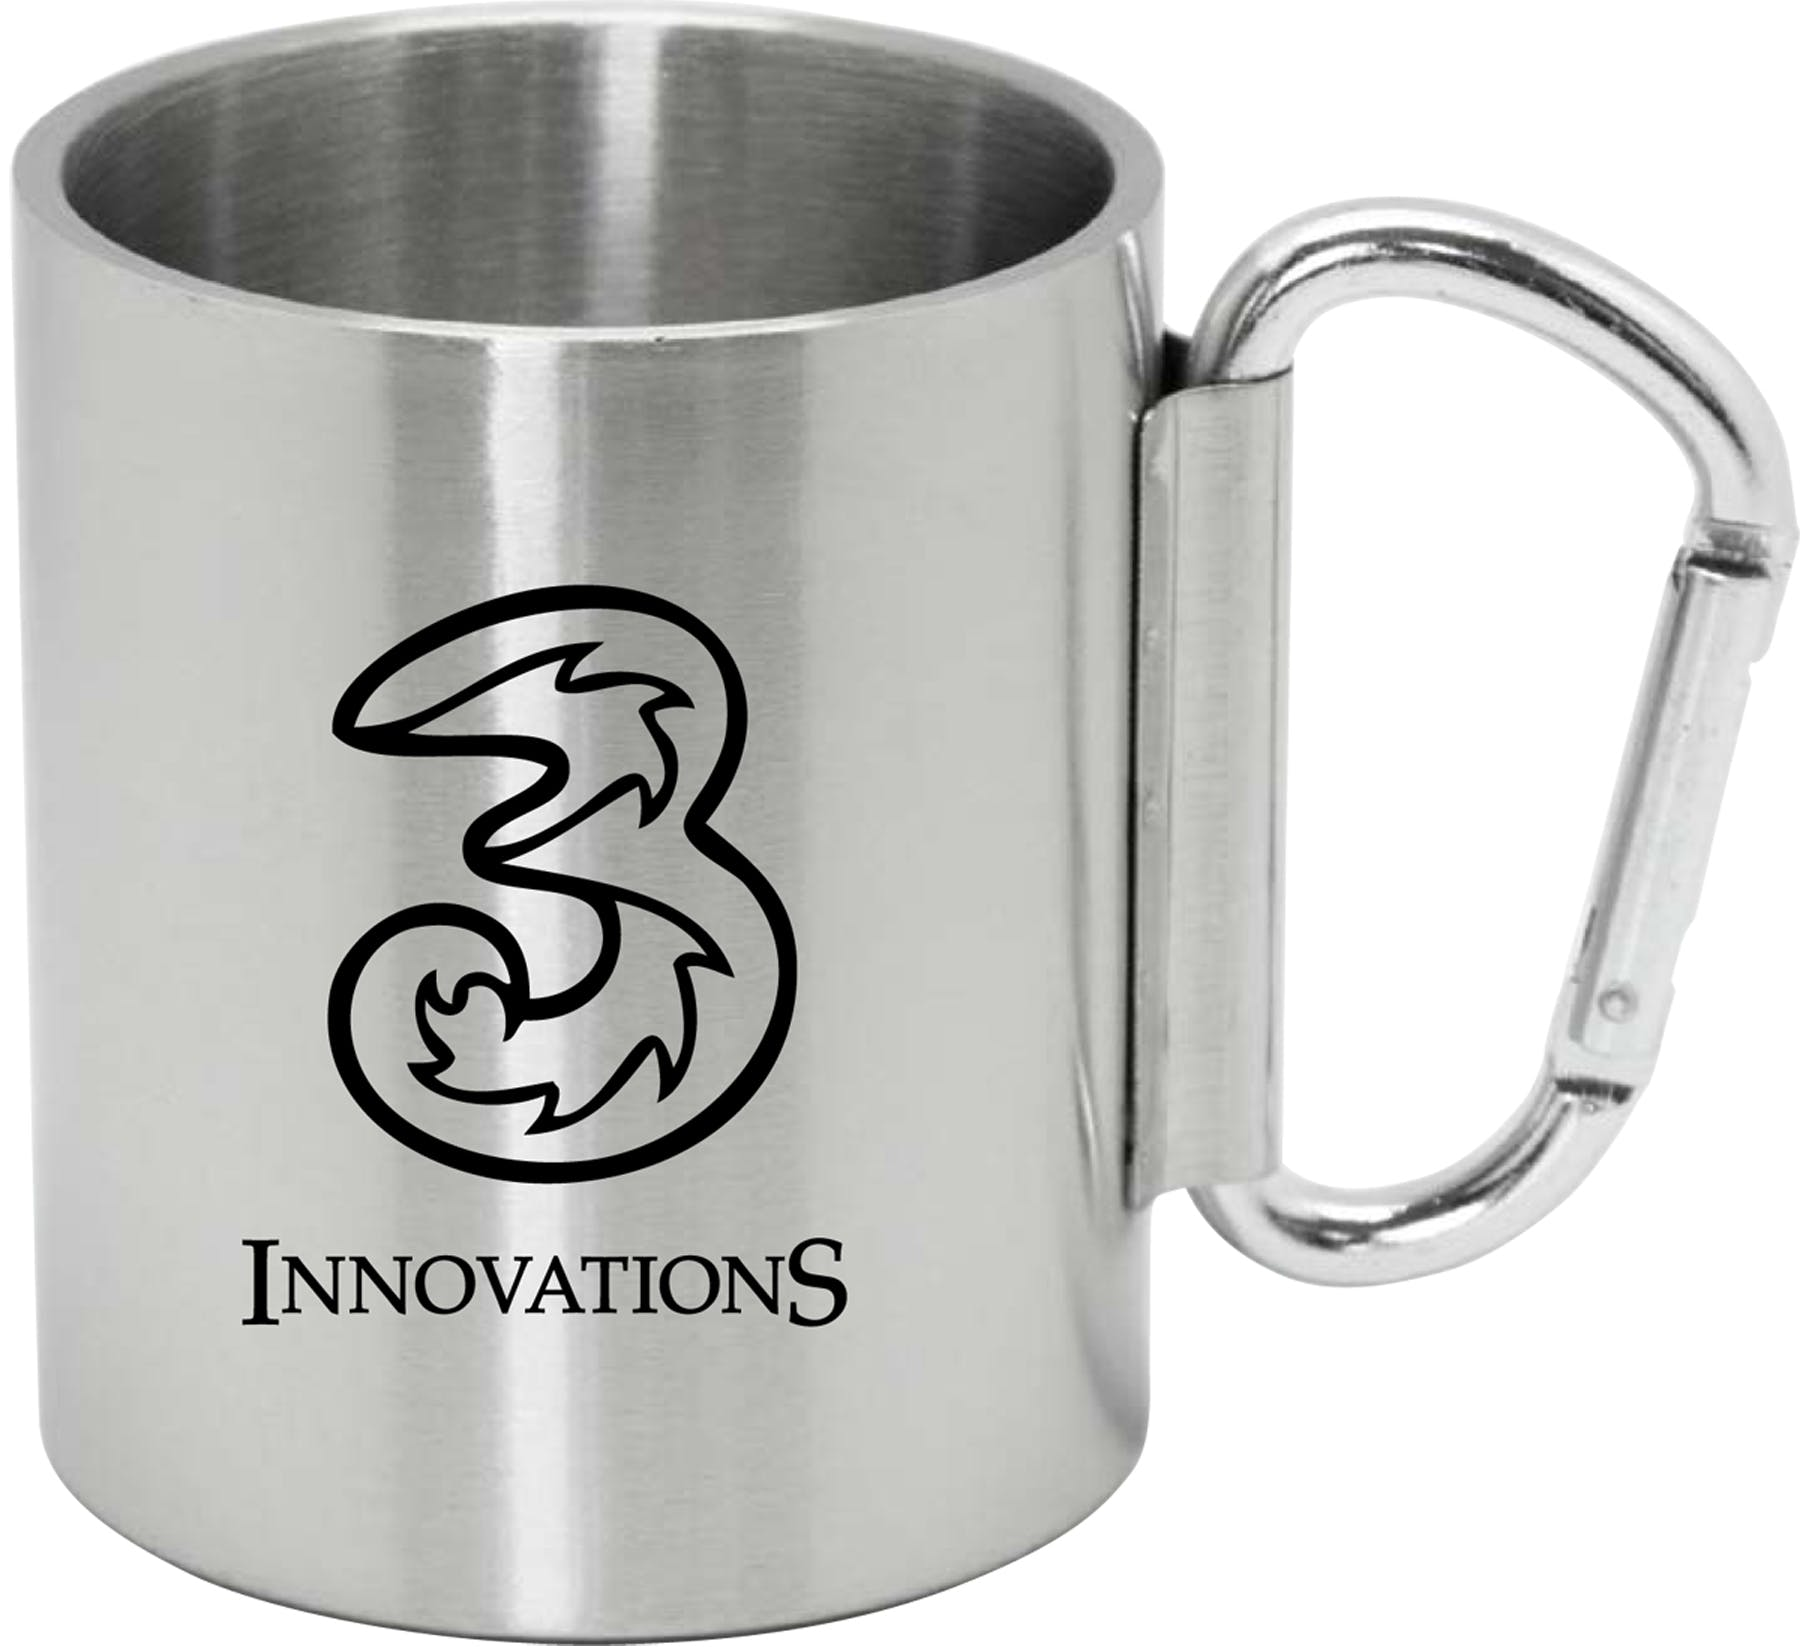 SSG Carabiner 9 oz   Stainless steel mug sold by Brewsuit.com